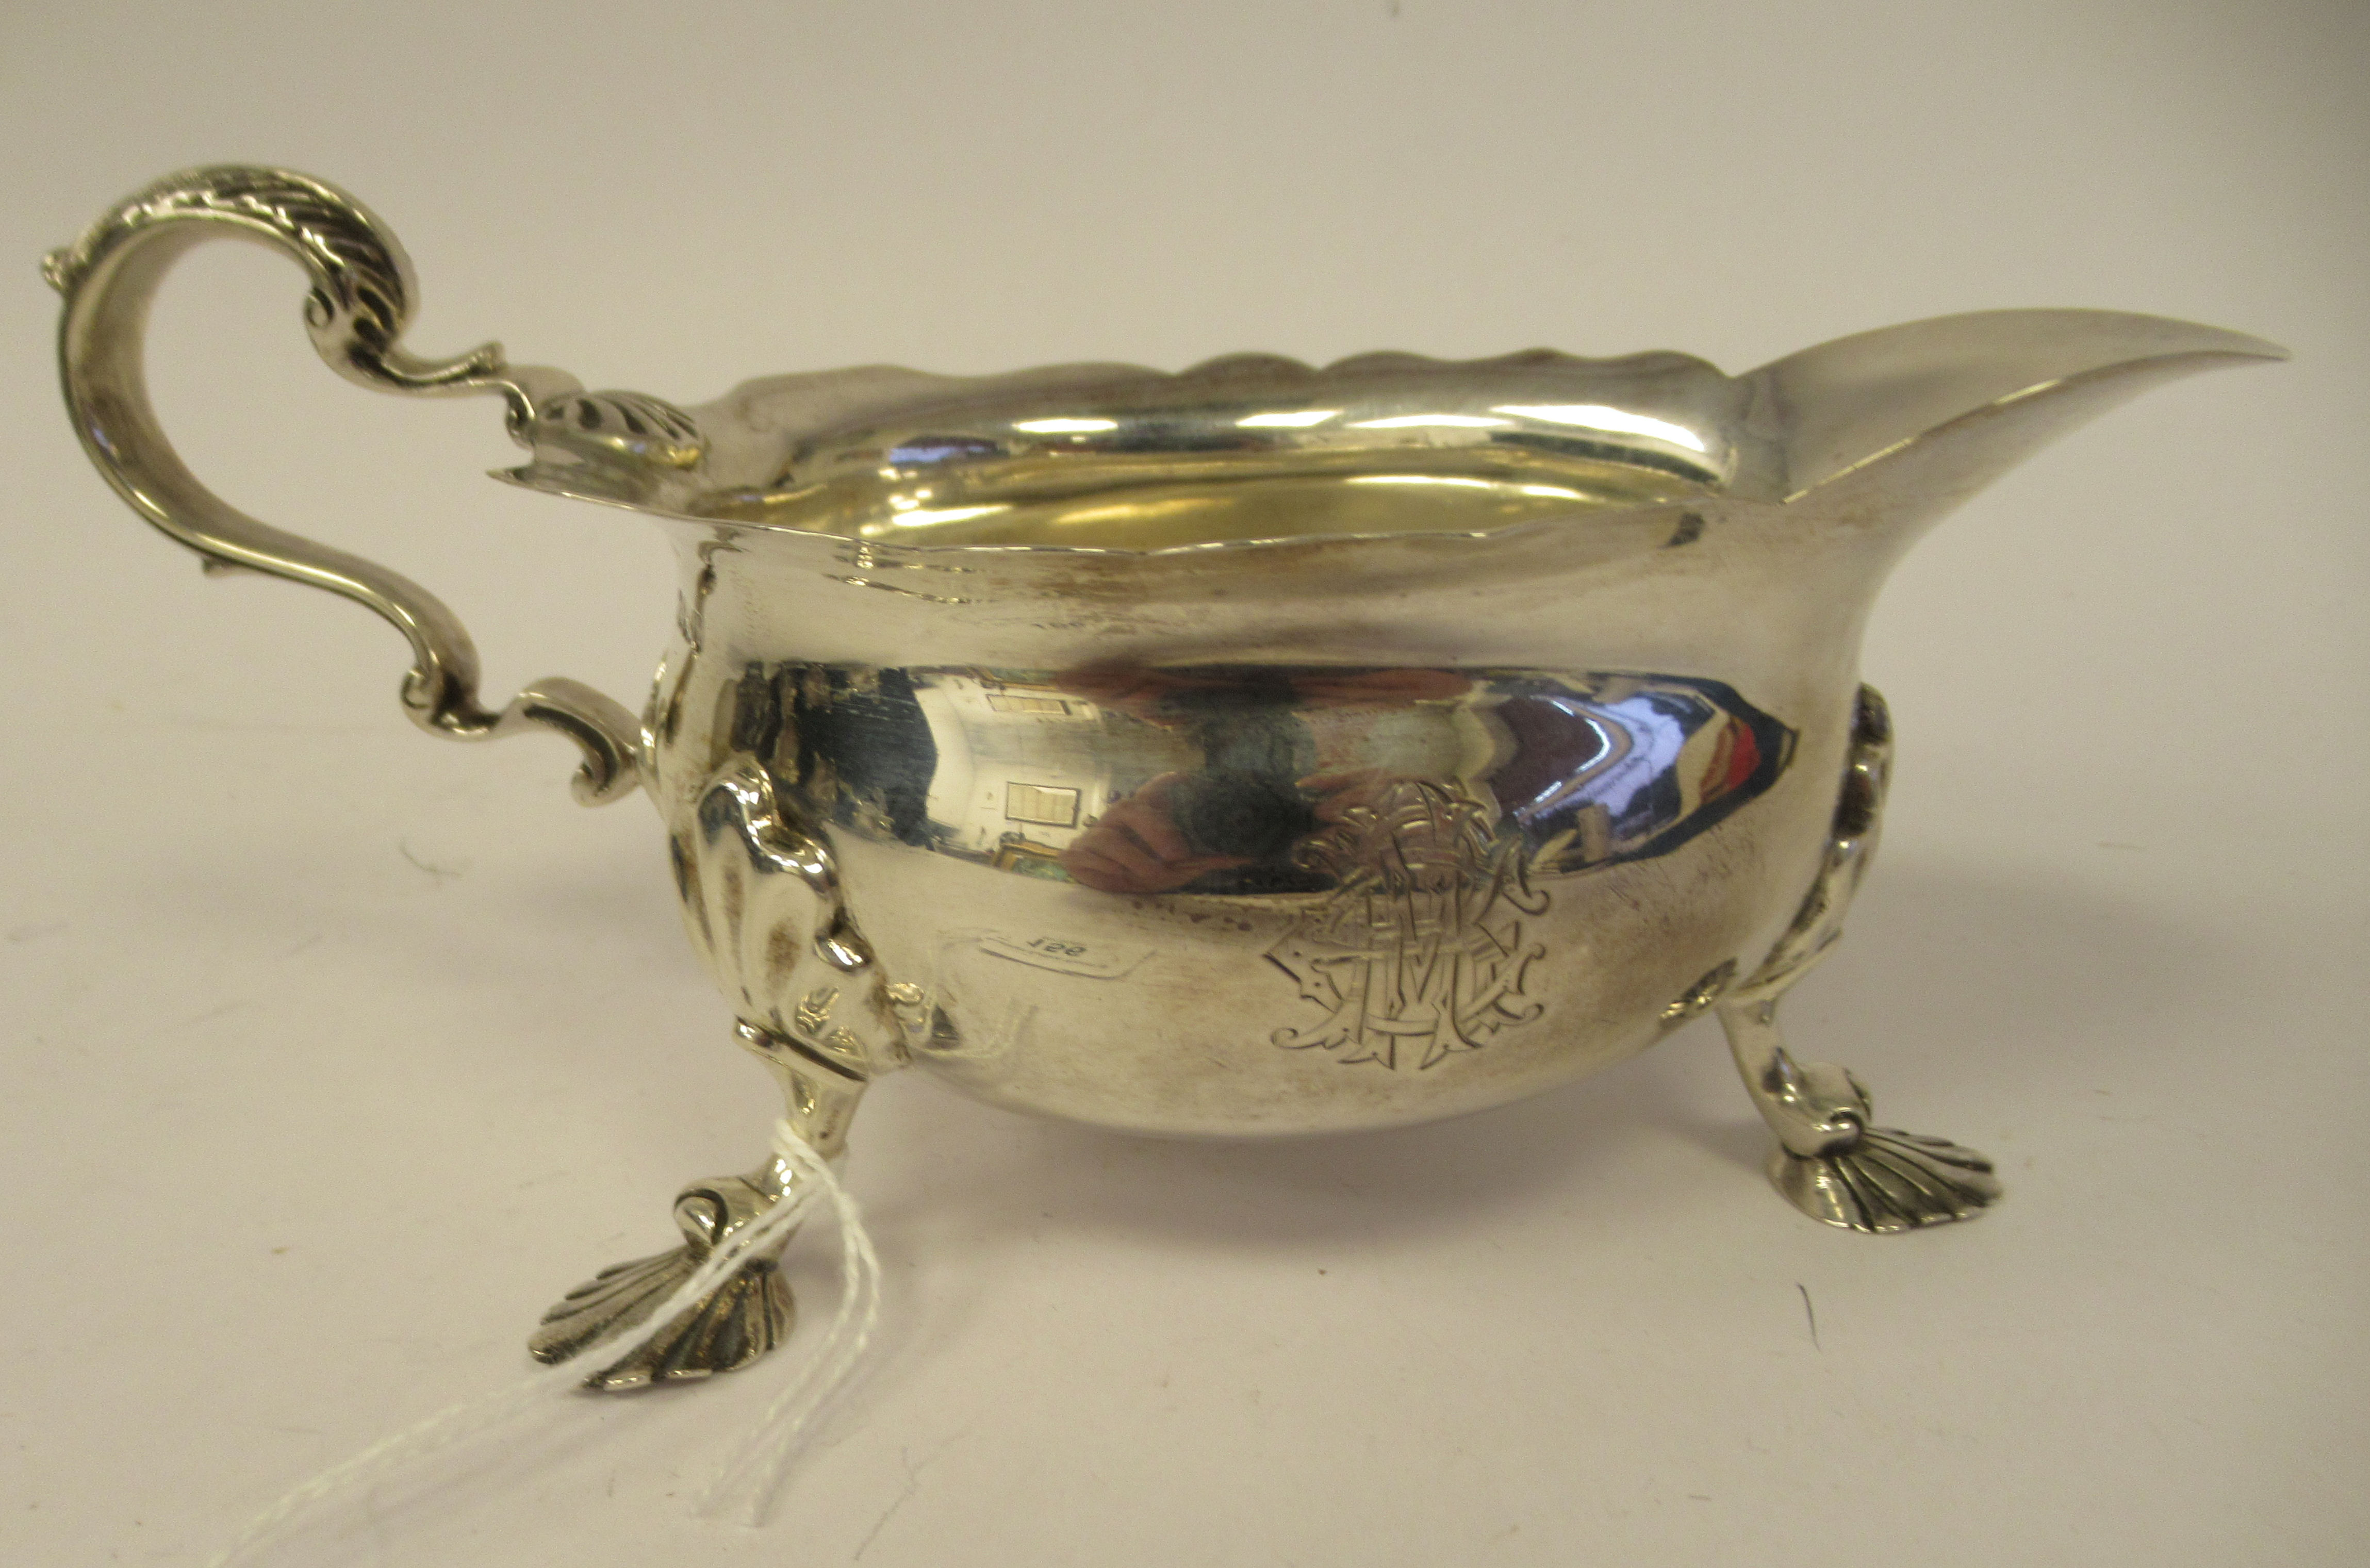 An Edwardian silver sauce boat with a decoratively cut, flared, wavy rim, a shell and acanthus, C-